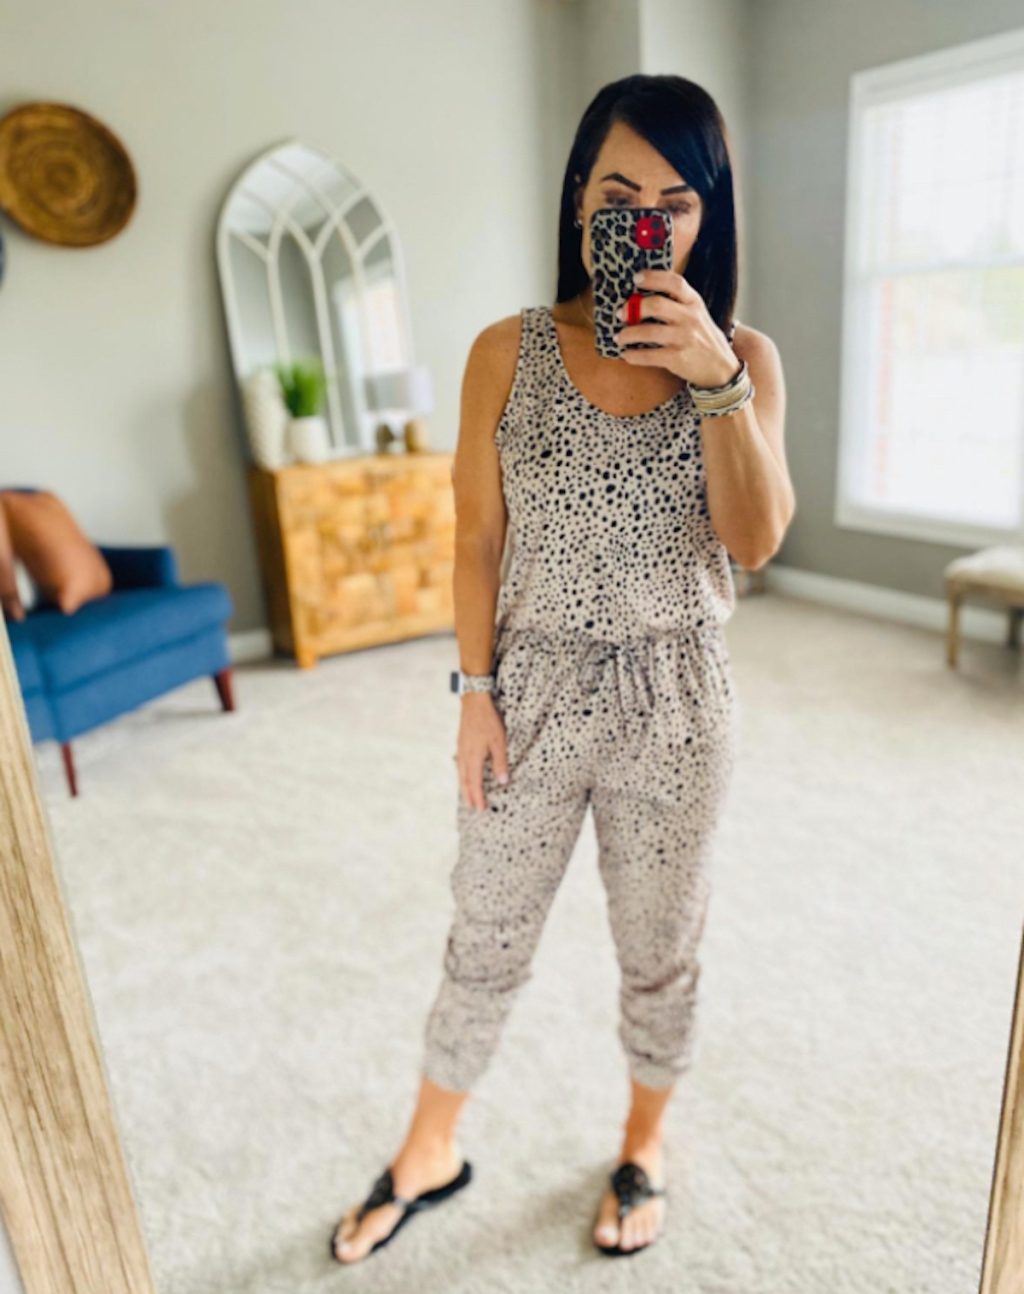 woman taking selfie in mirror wearing leopard jumpsuit womens jumpsuits and rompers